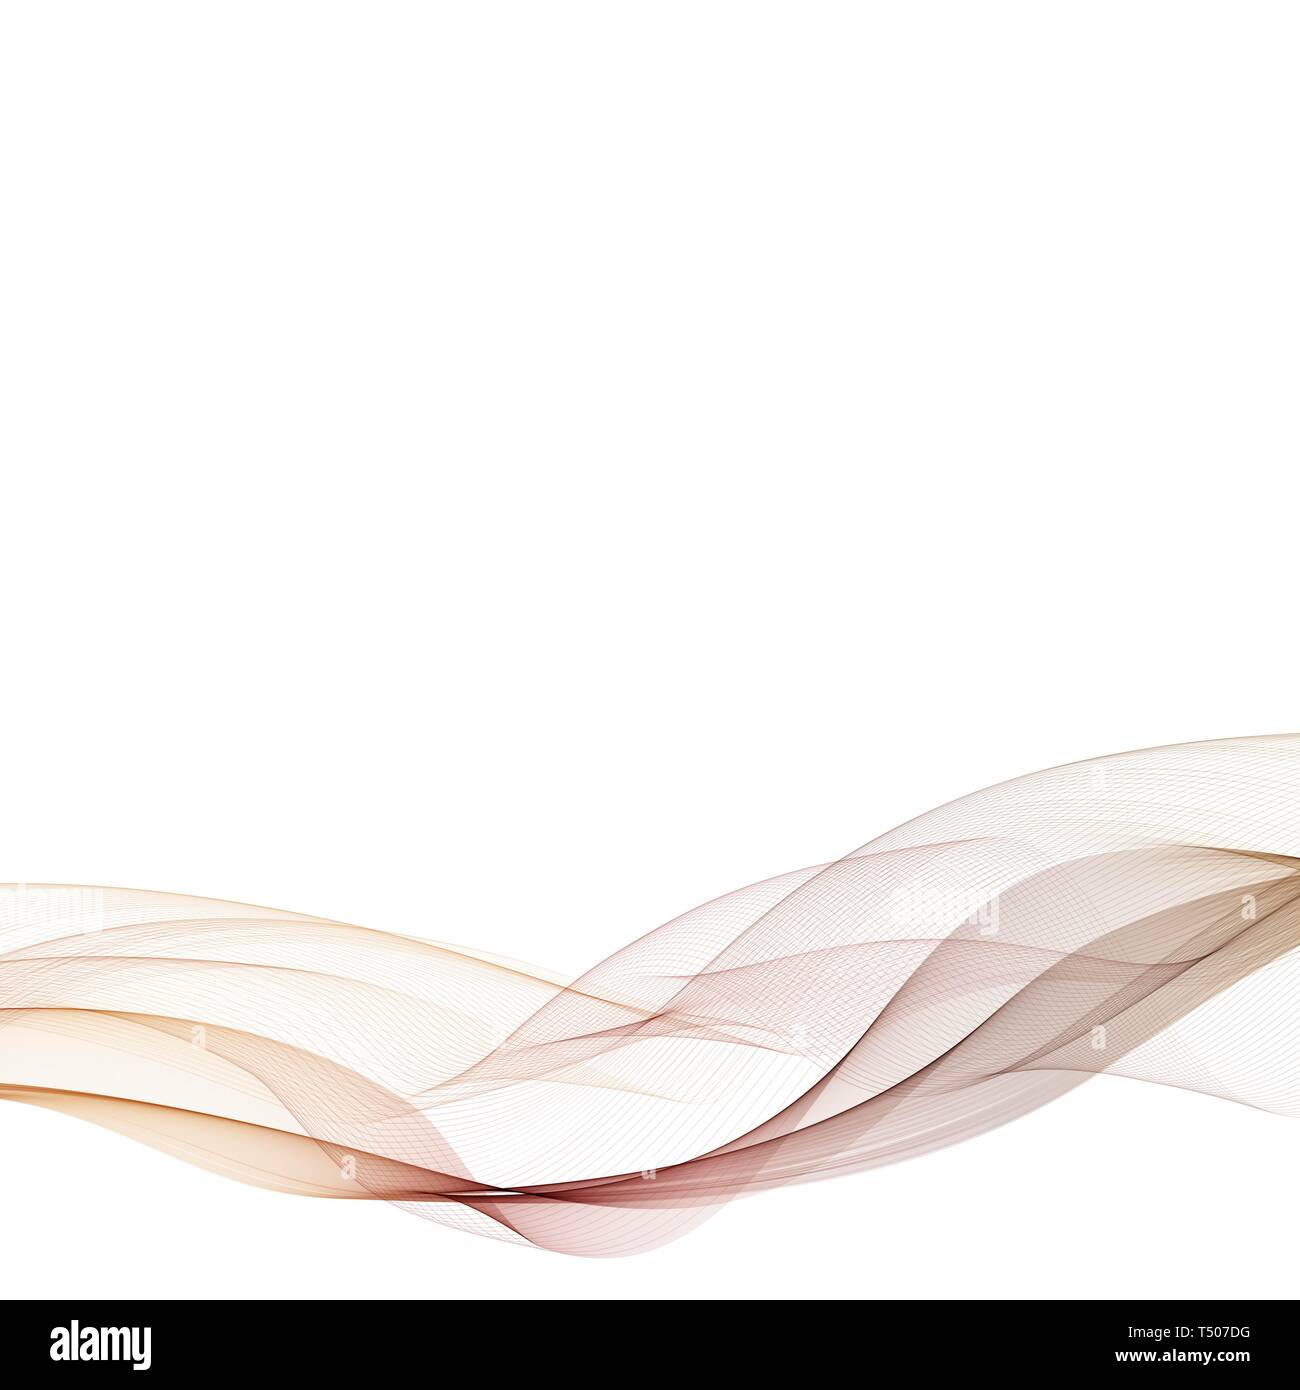 Brown wave. Vector layout for advertising. abstract illustration. eps 10 - Stock Image